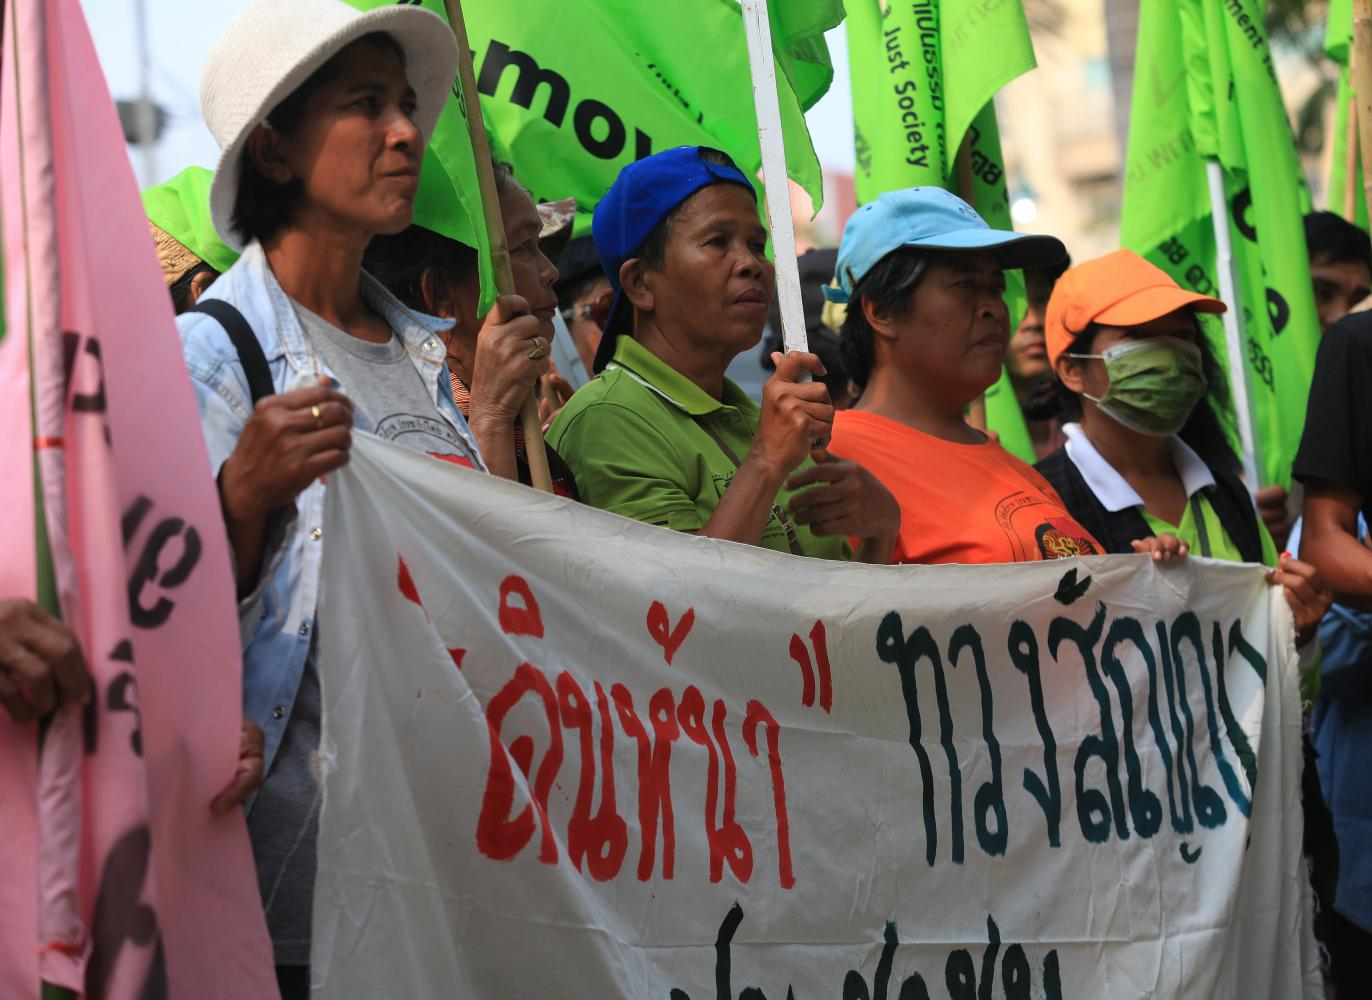 P-Move, a grassroots group which campaigns for land rights for the poor, submits a petition at Government House asking for the state to speed up land allocation to forest communities and give them rights and protection. Yet several forest dwellers face harsh punishment. Somchai Poomlard